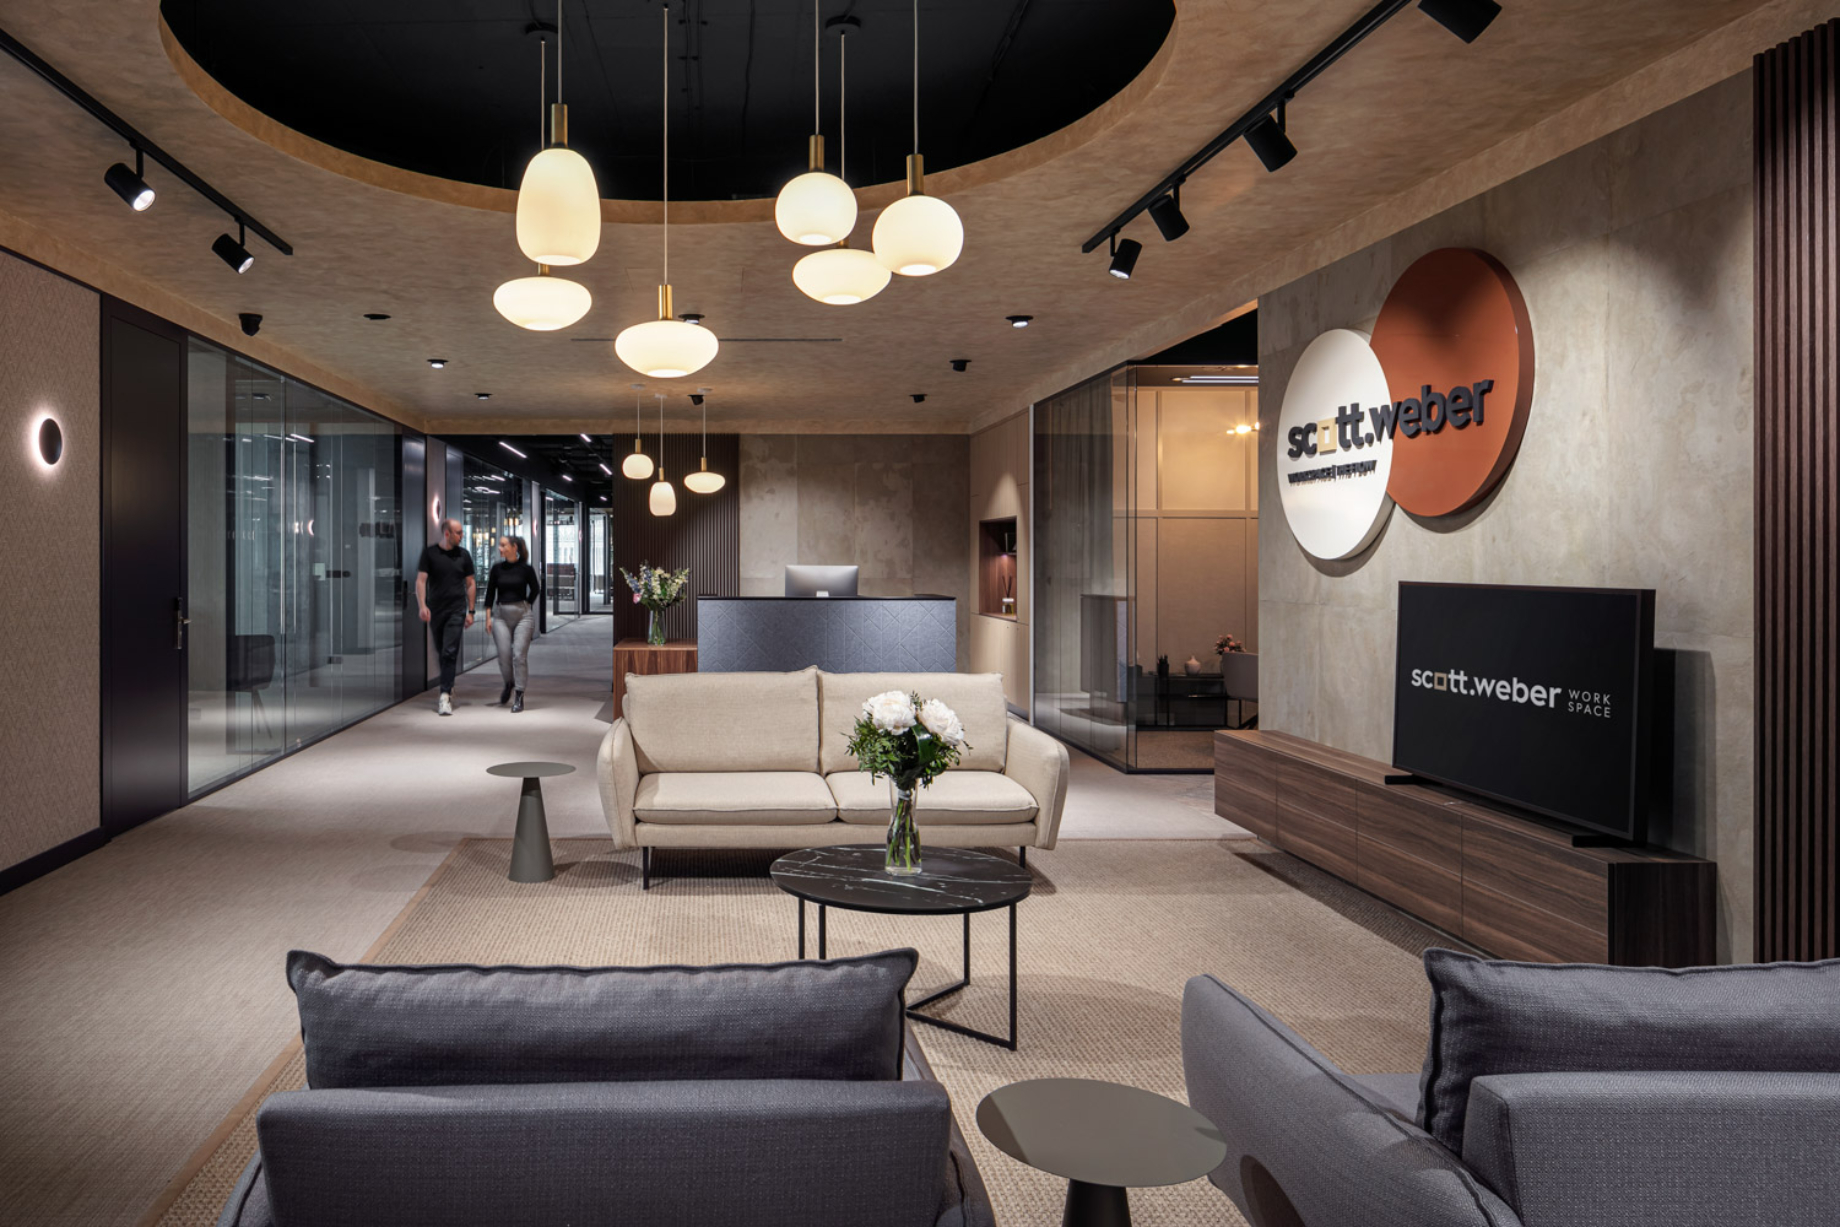 Interior of reception area at The Flow shot by Jiri Lizler for Scott Weber